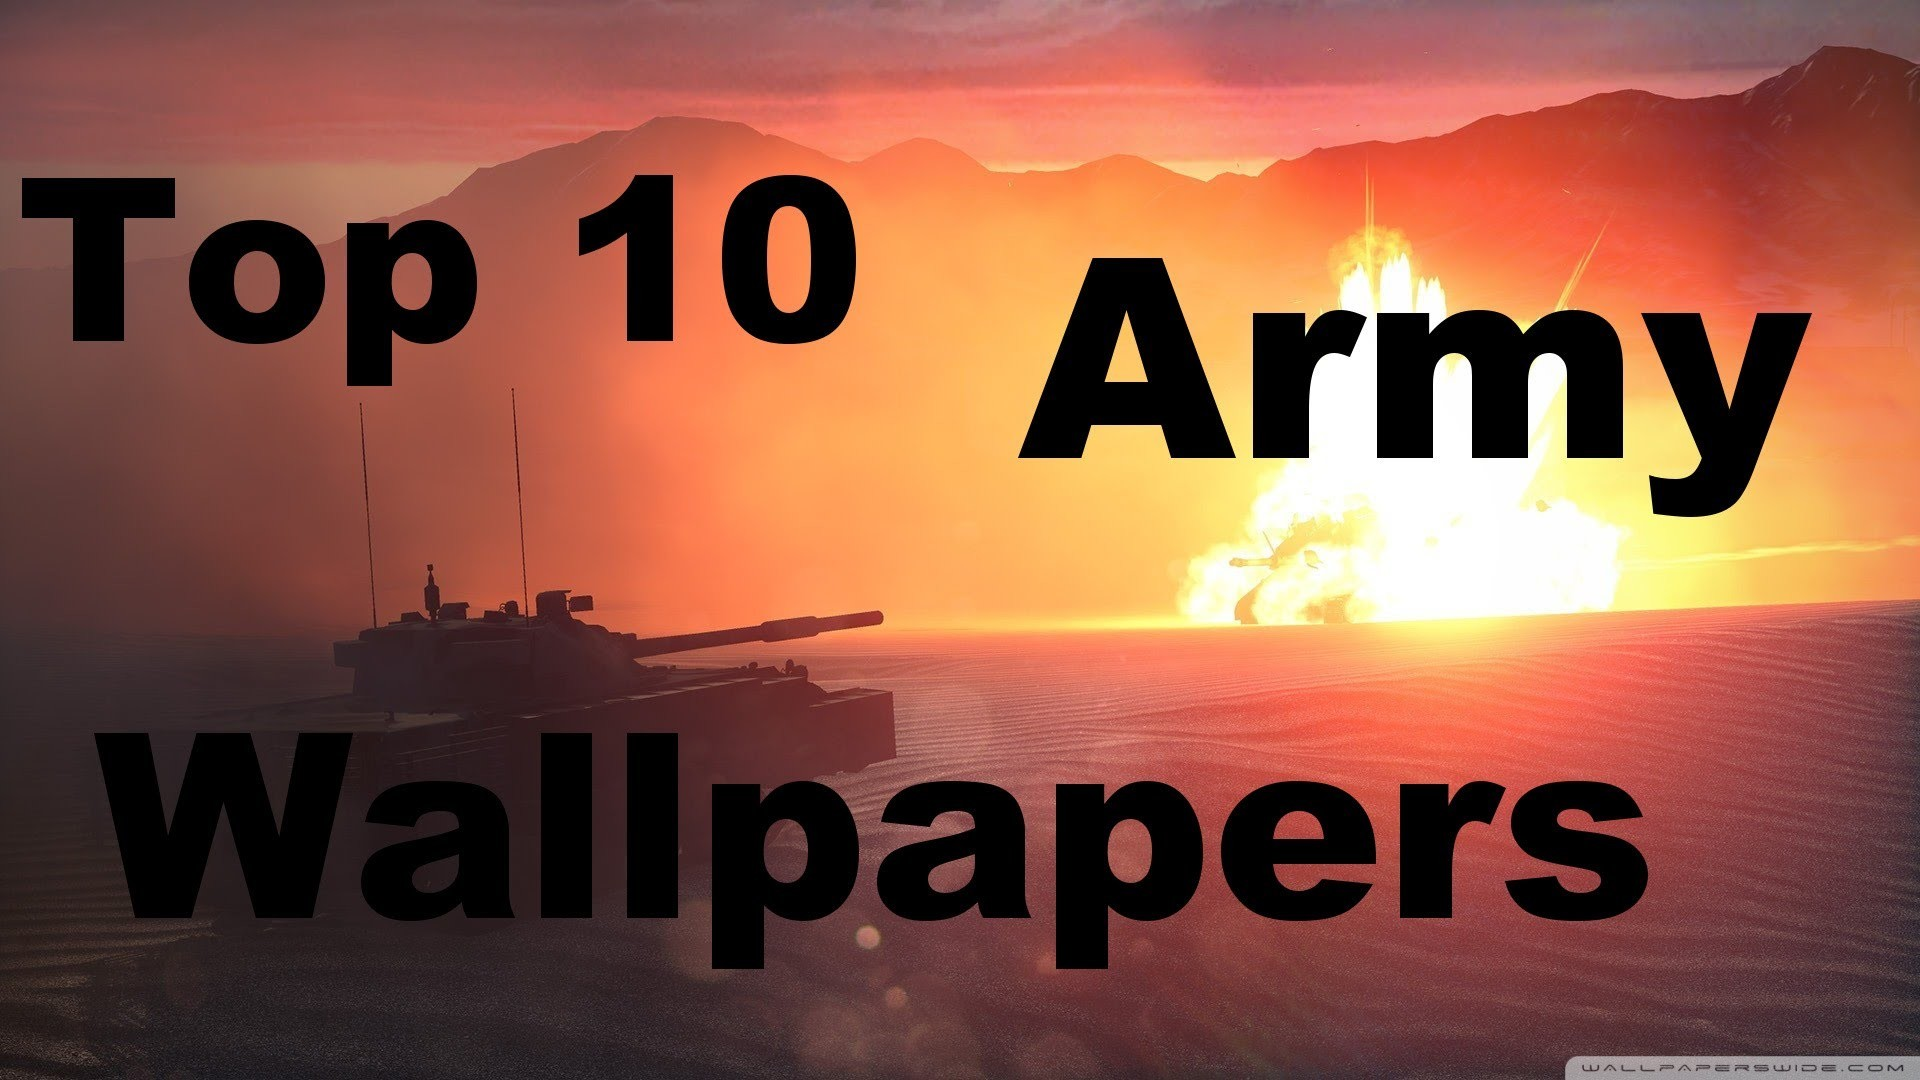 Top 10 Army Wallpapers HD + DOWNLOAD